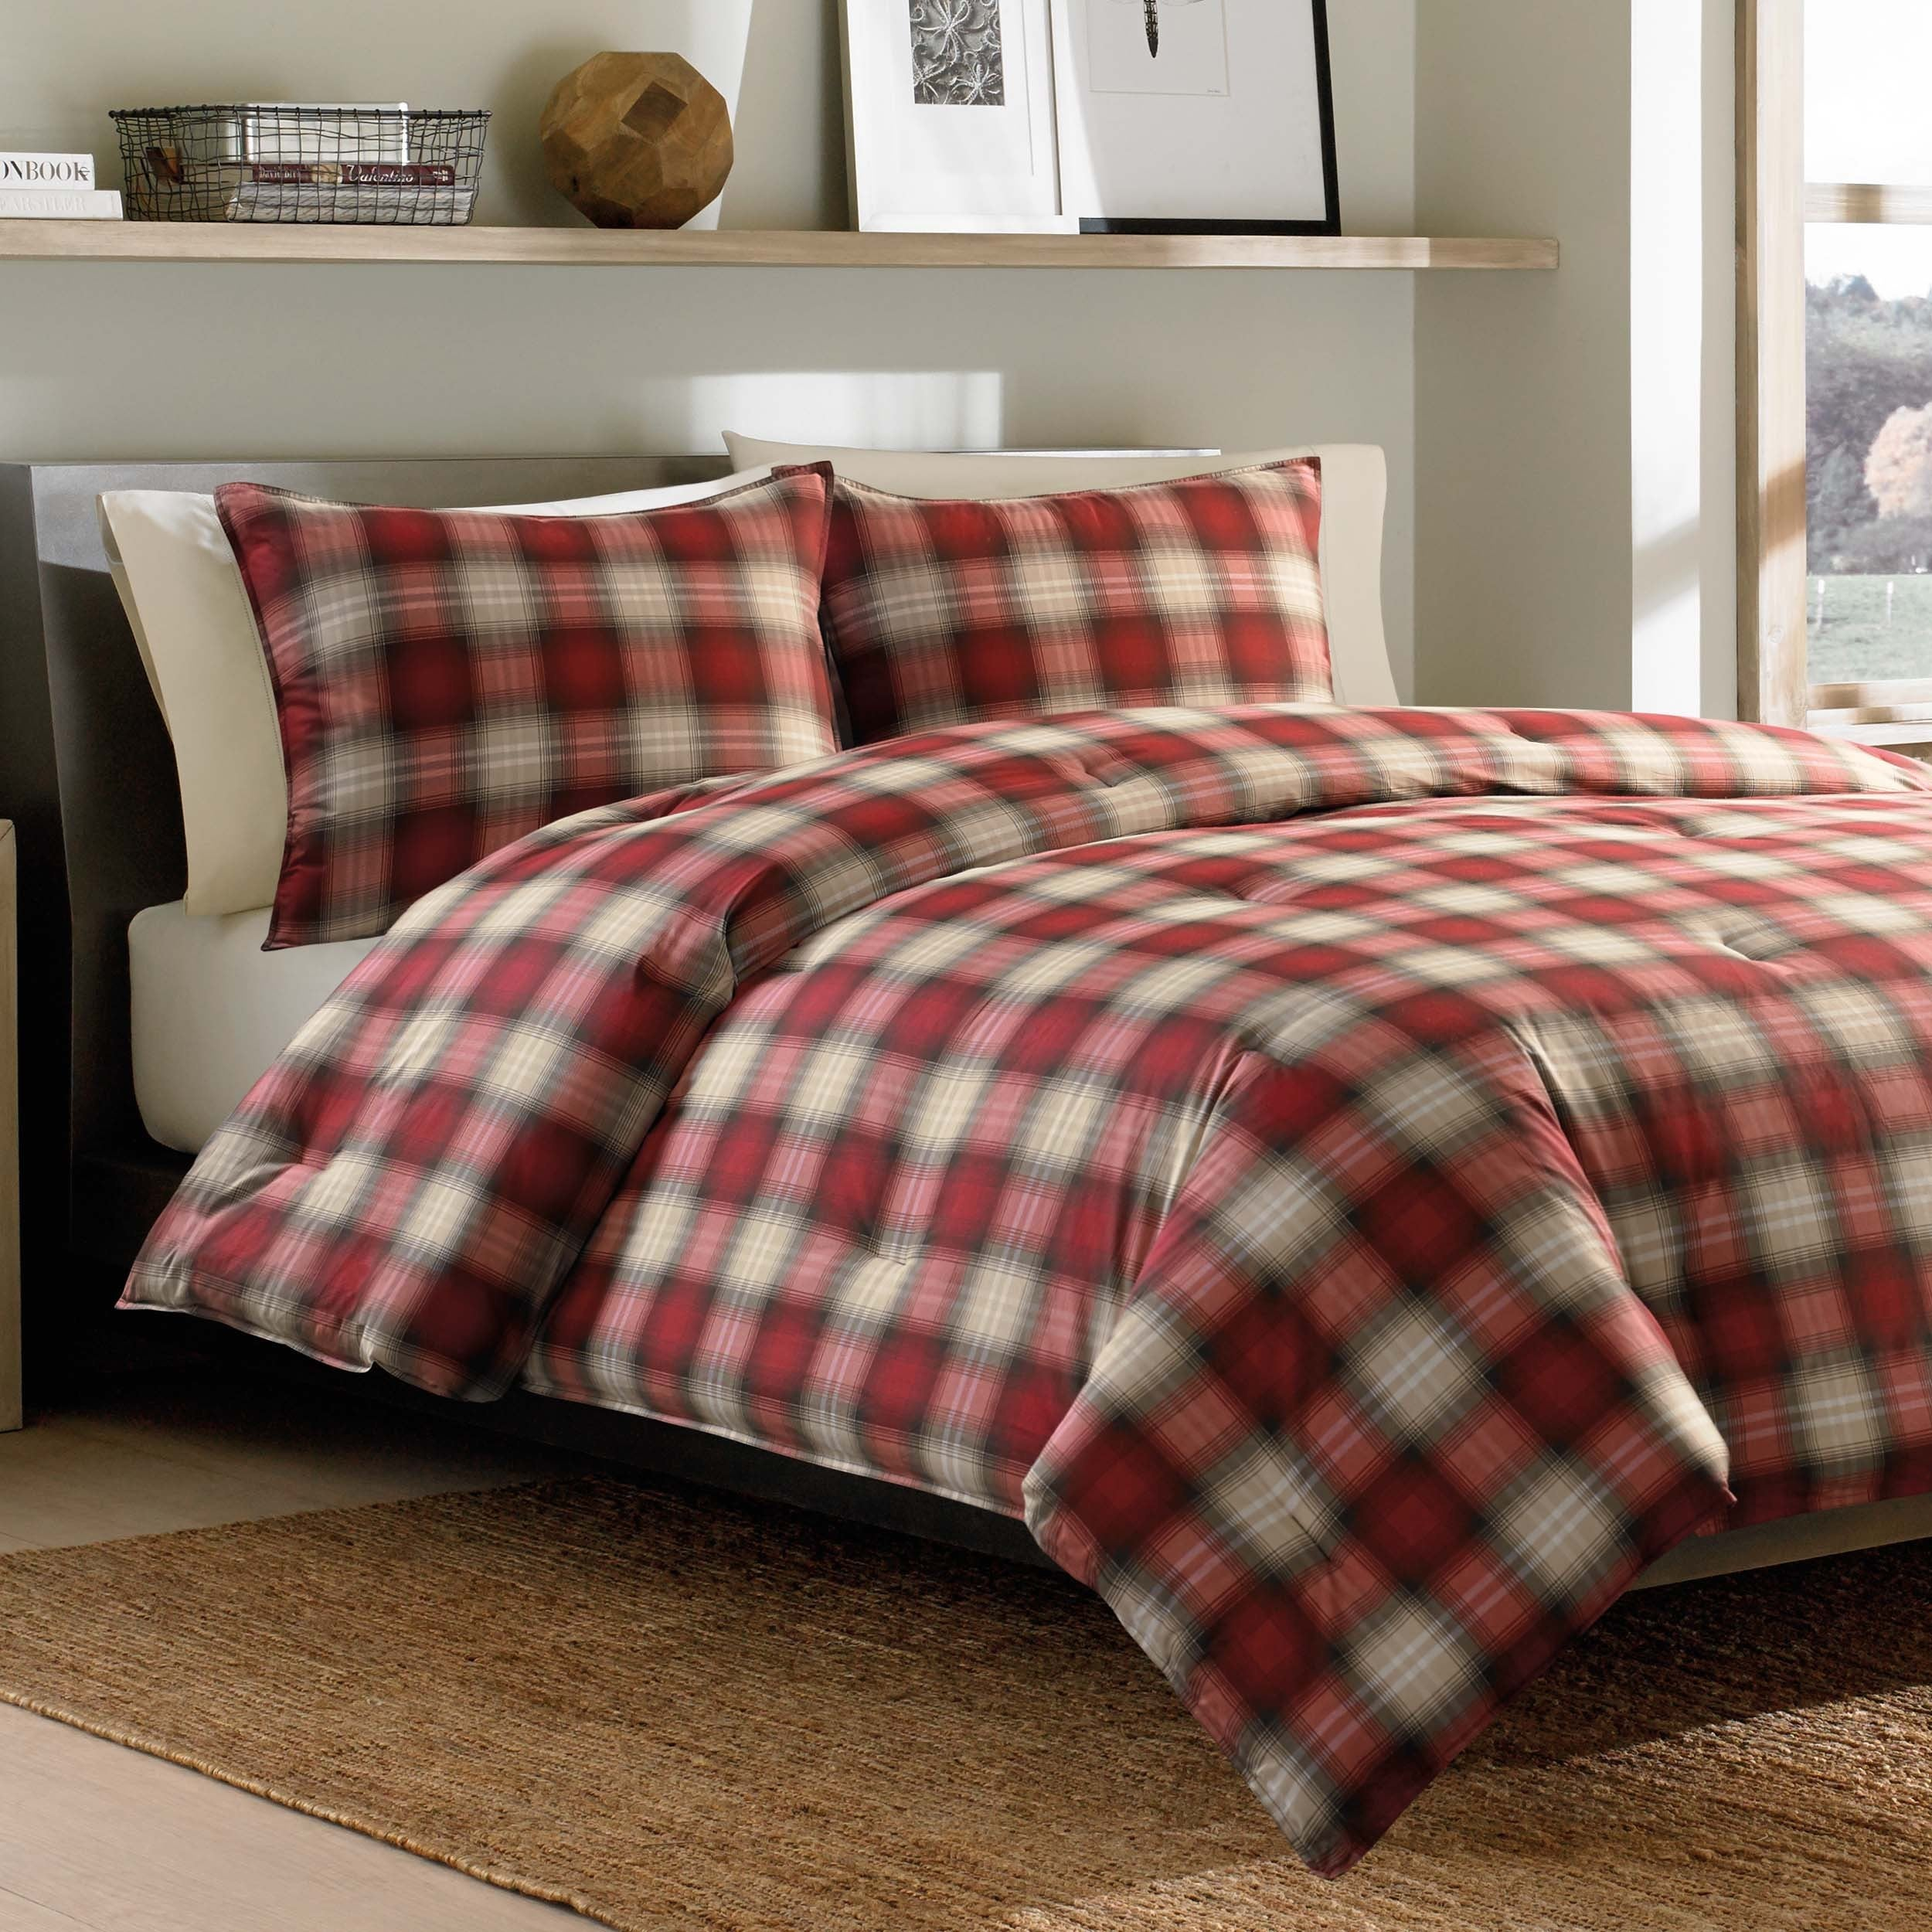 buffalo duvet red bean free flannel plaid l at shipping cover bedding ultrasoft comforter pin